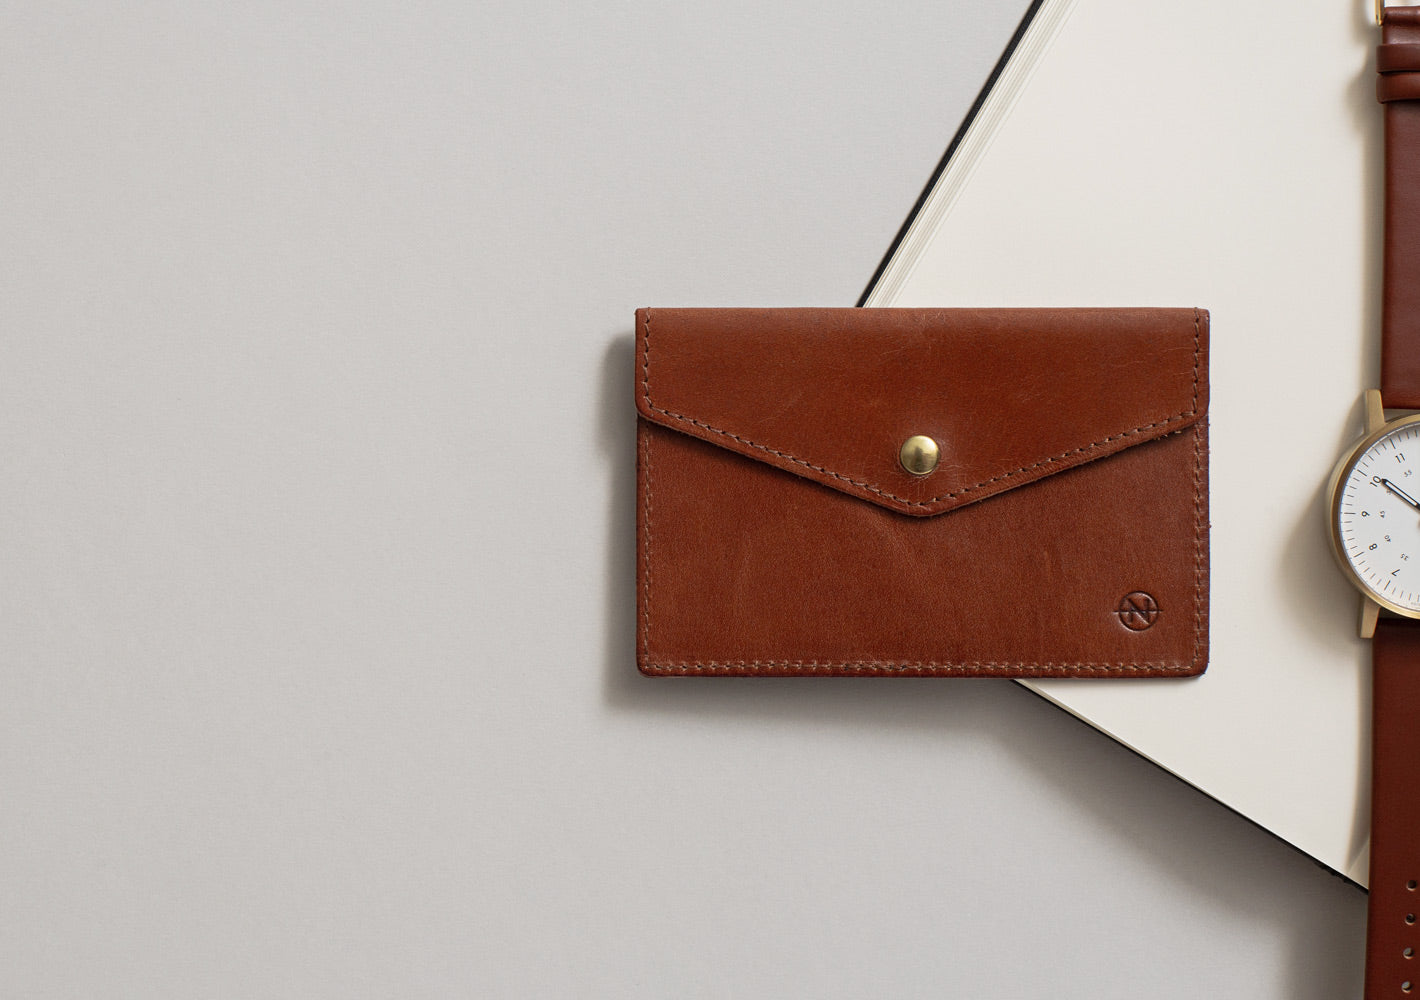 The Cognac Nimrodian Card Case from VOID Watches, designed by David Ericsson.